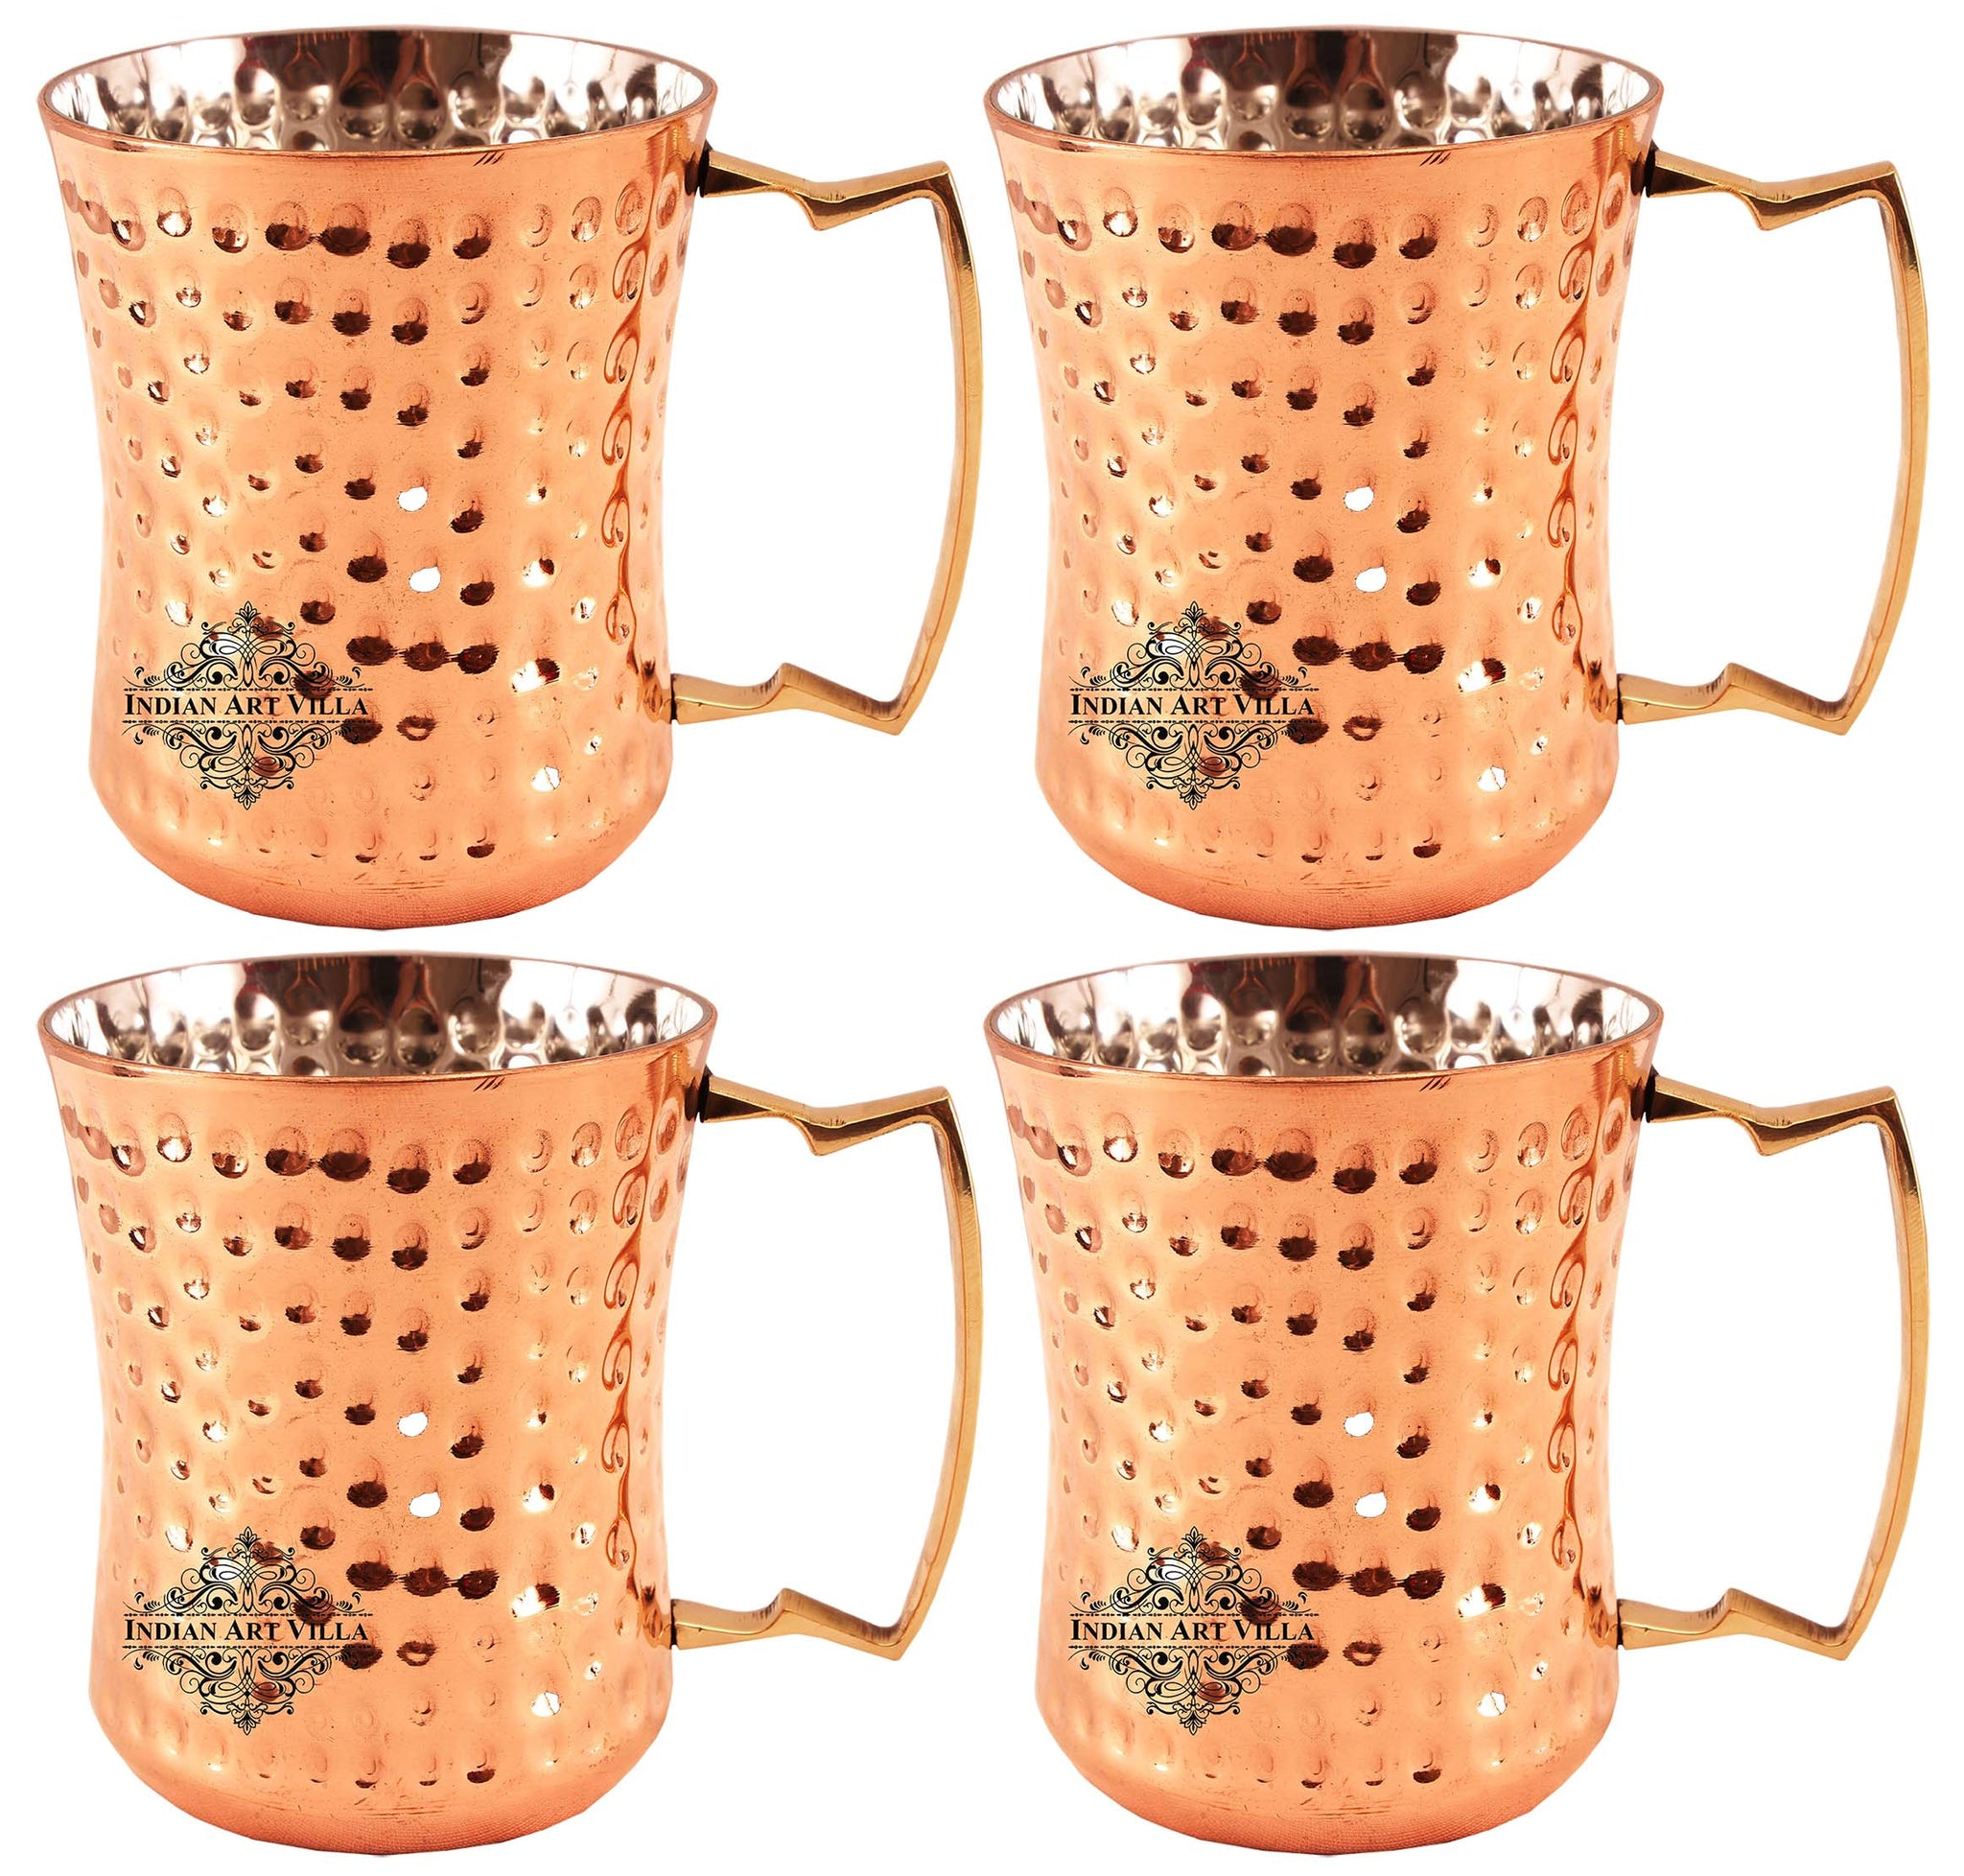 Steel Copper Hammered Design Round Curved Glass Tumbler Set of